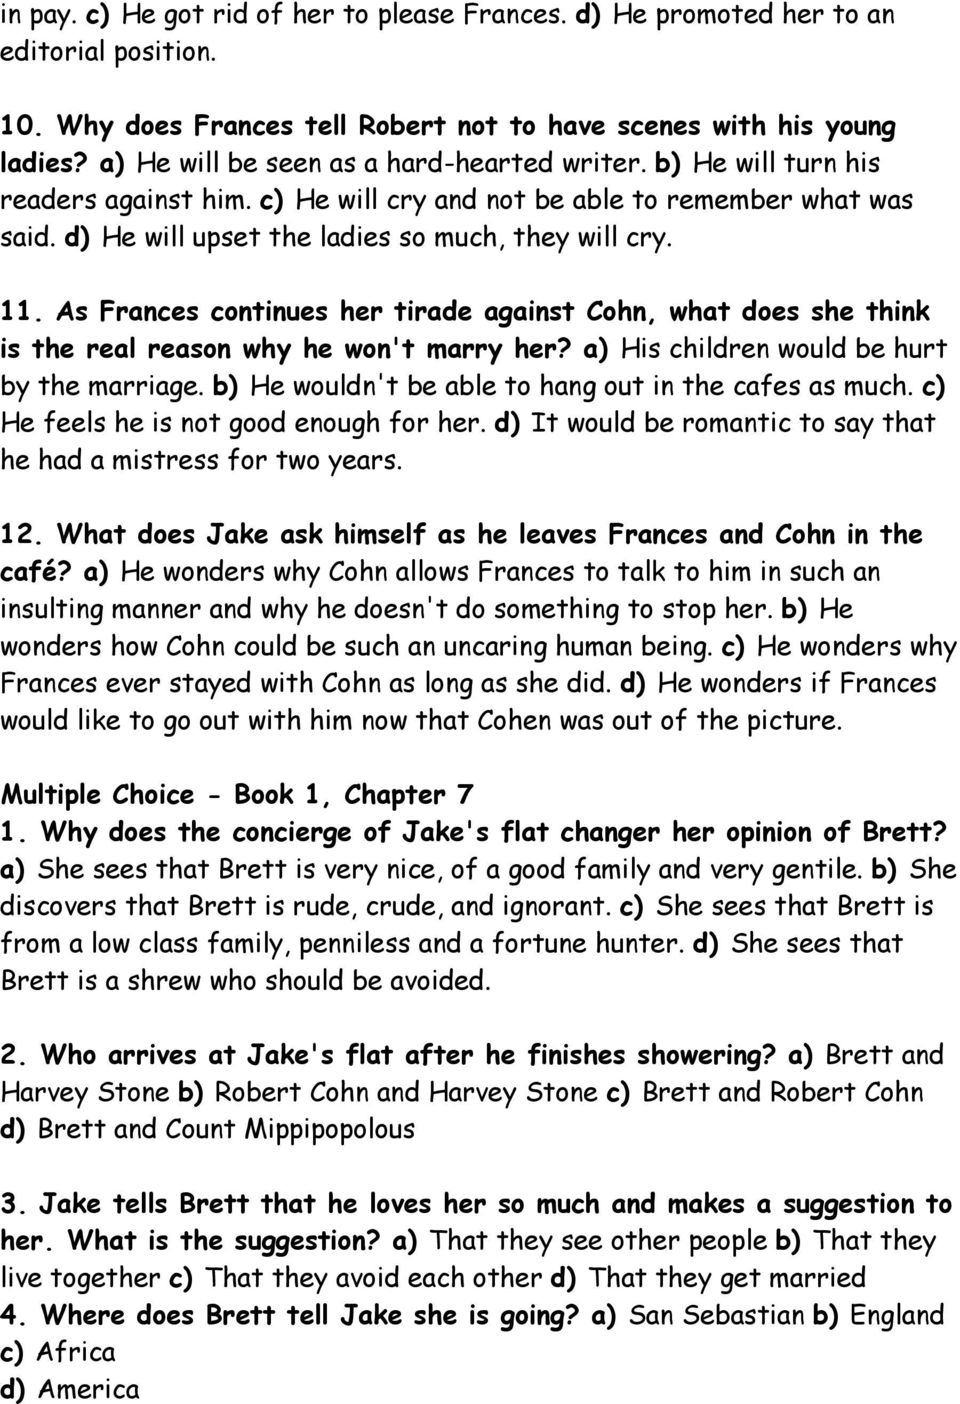 As Frances continues her tirade against Cohn, what does she think is the real reason why he won't marry her? a) His children would be hurt by the marriage.